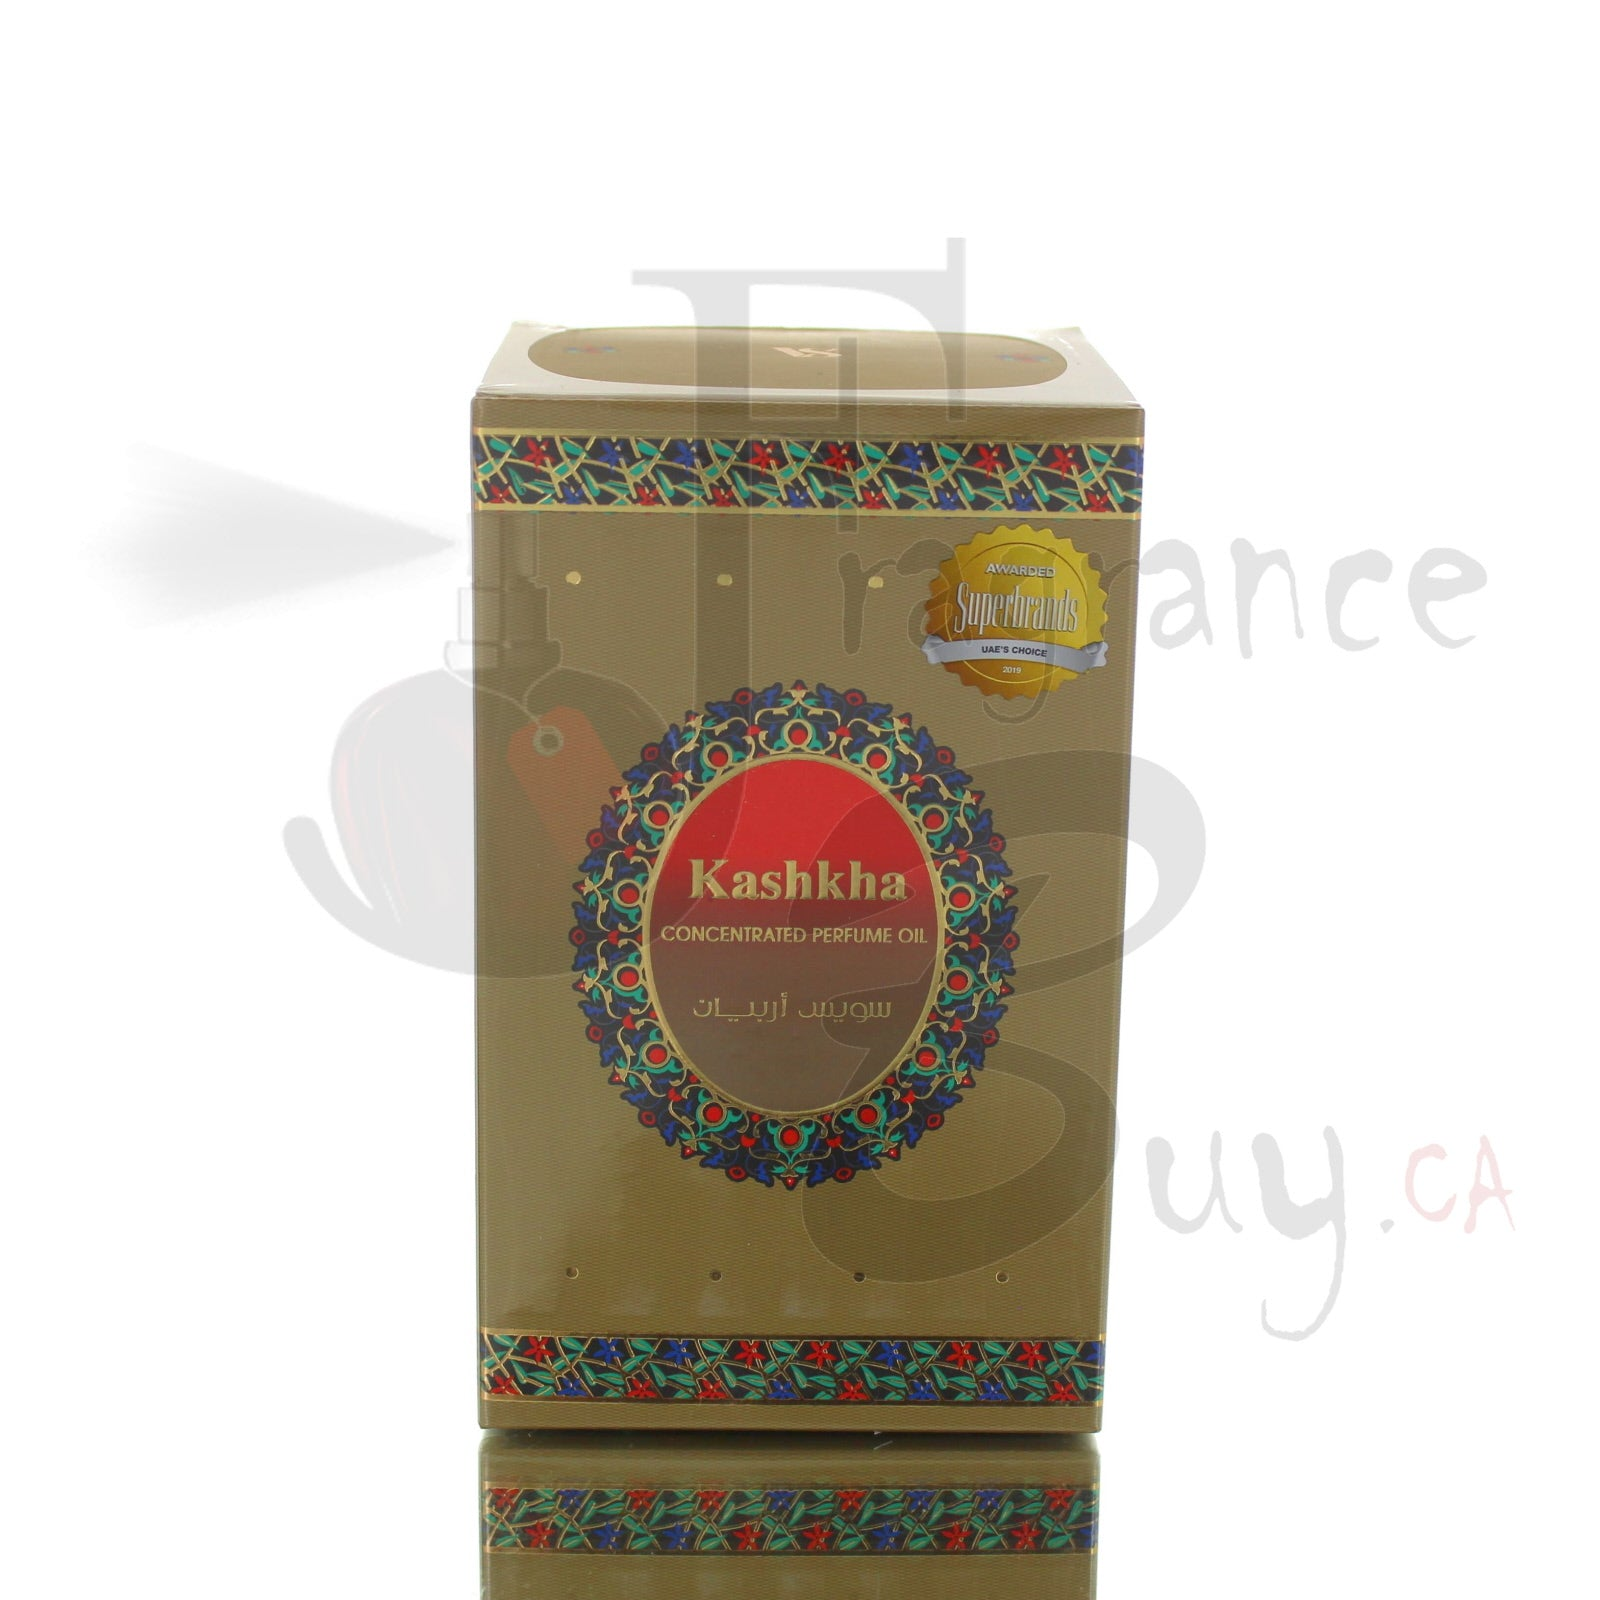 Swiss Arabian Kashkha Concentrated Perfume Oil For Woman